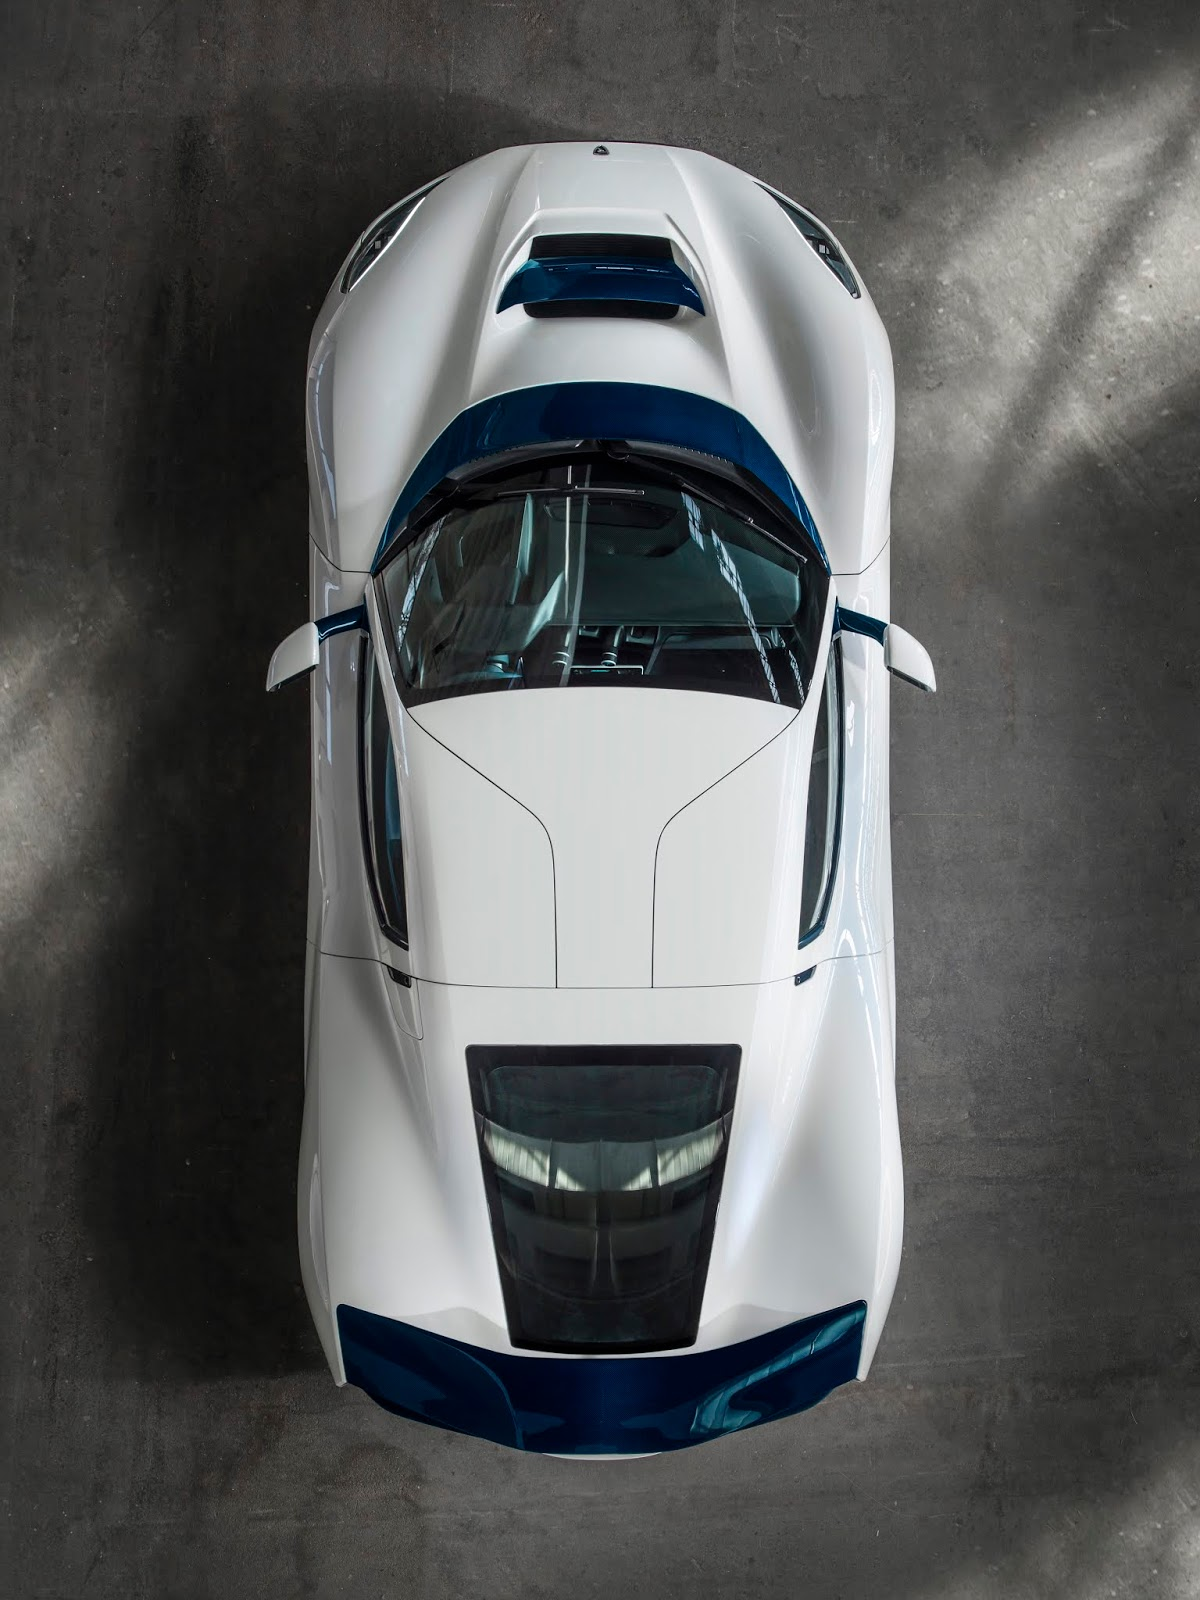 C TWO Top Down Rimac C Two. Η νέα φυλή στα hypercars, έρχεται με 1900 ίππους. C Two, Electric cars, hypercar, Rimac, zblog